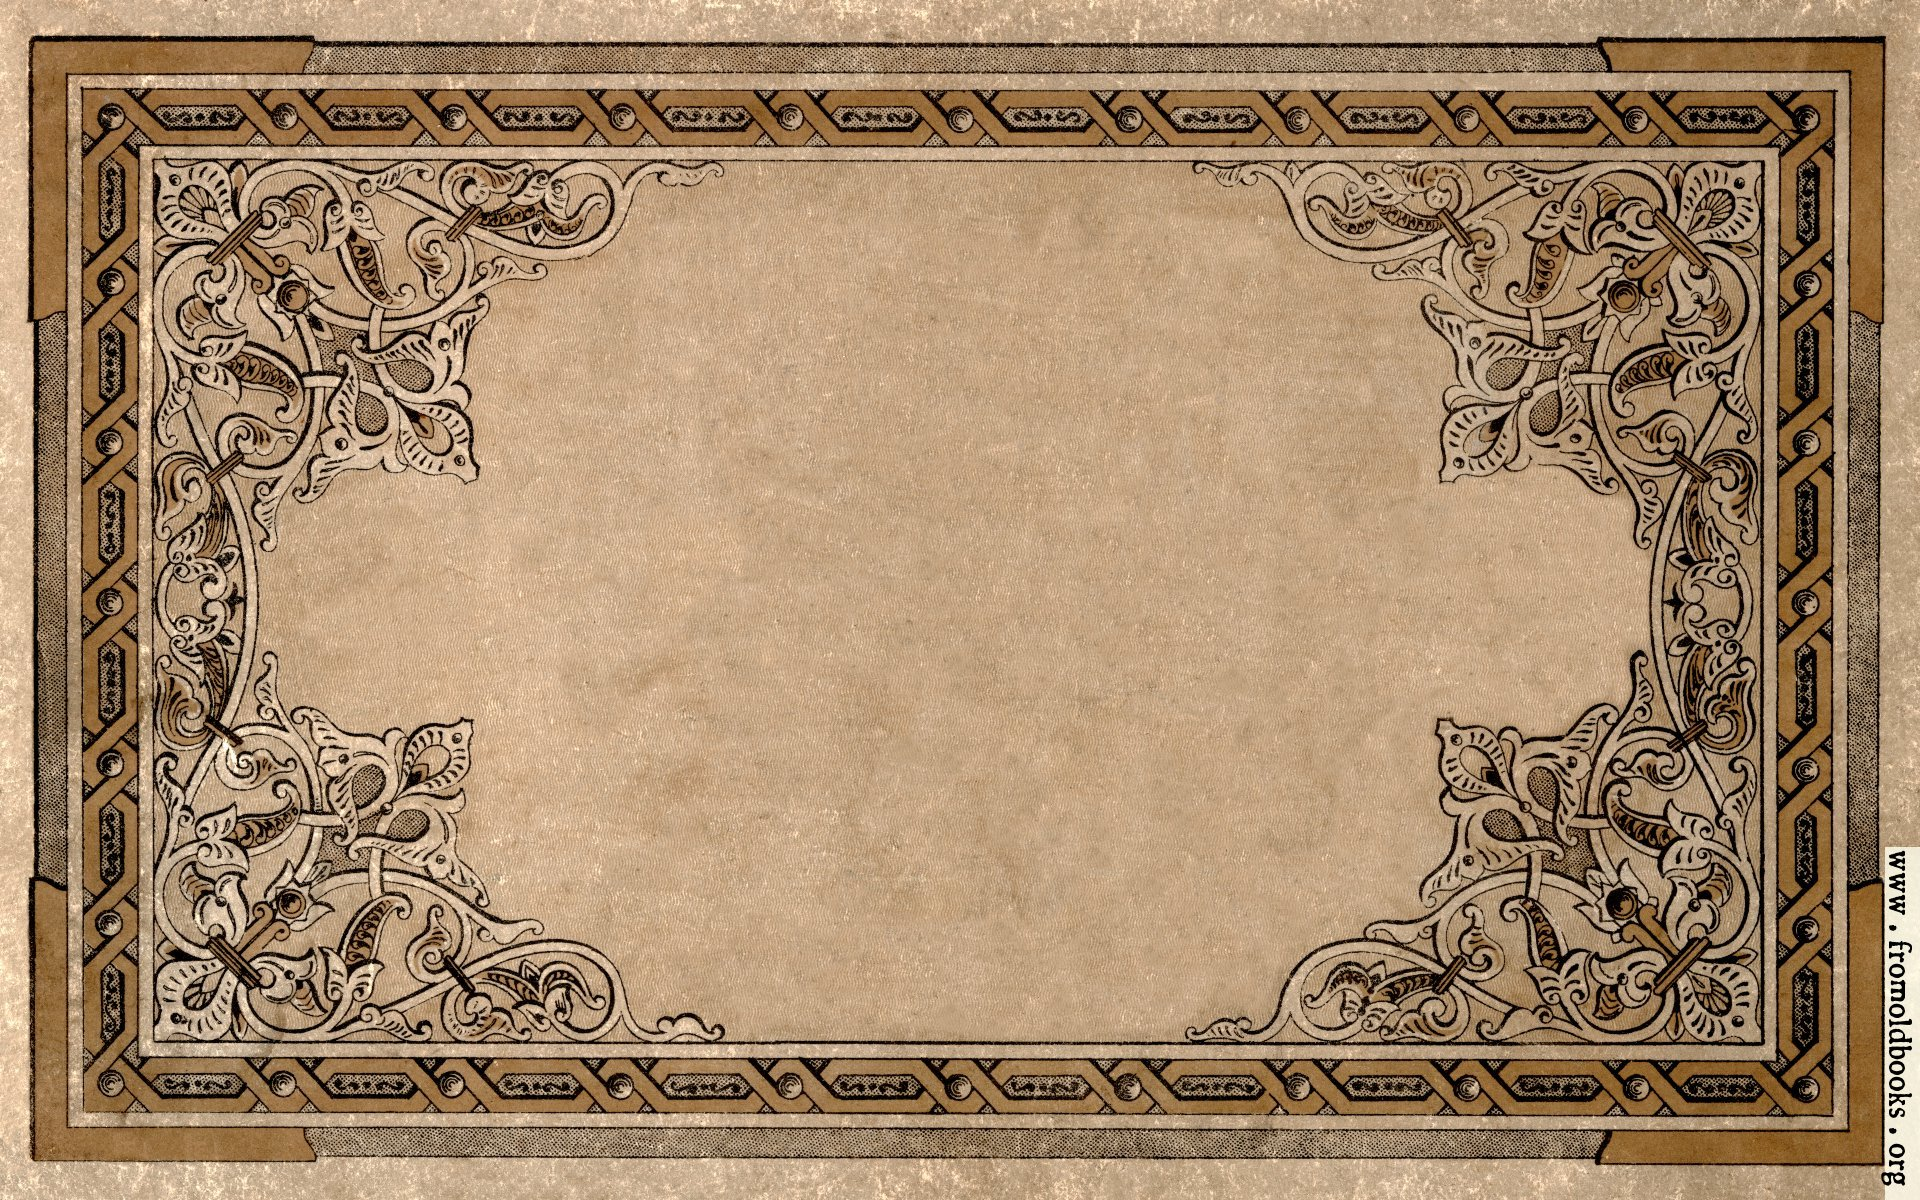 Old Book Cover Clipart ~ Vintage ornate border